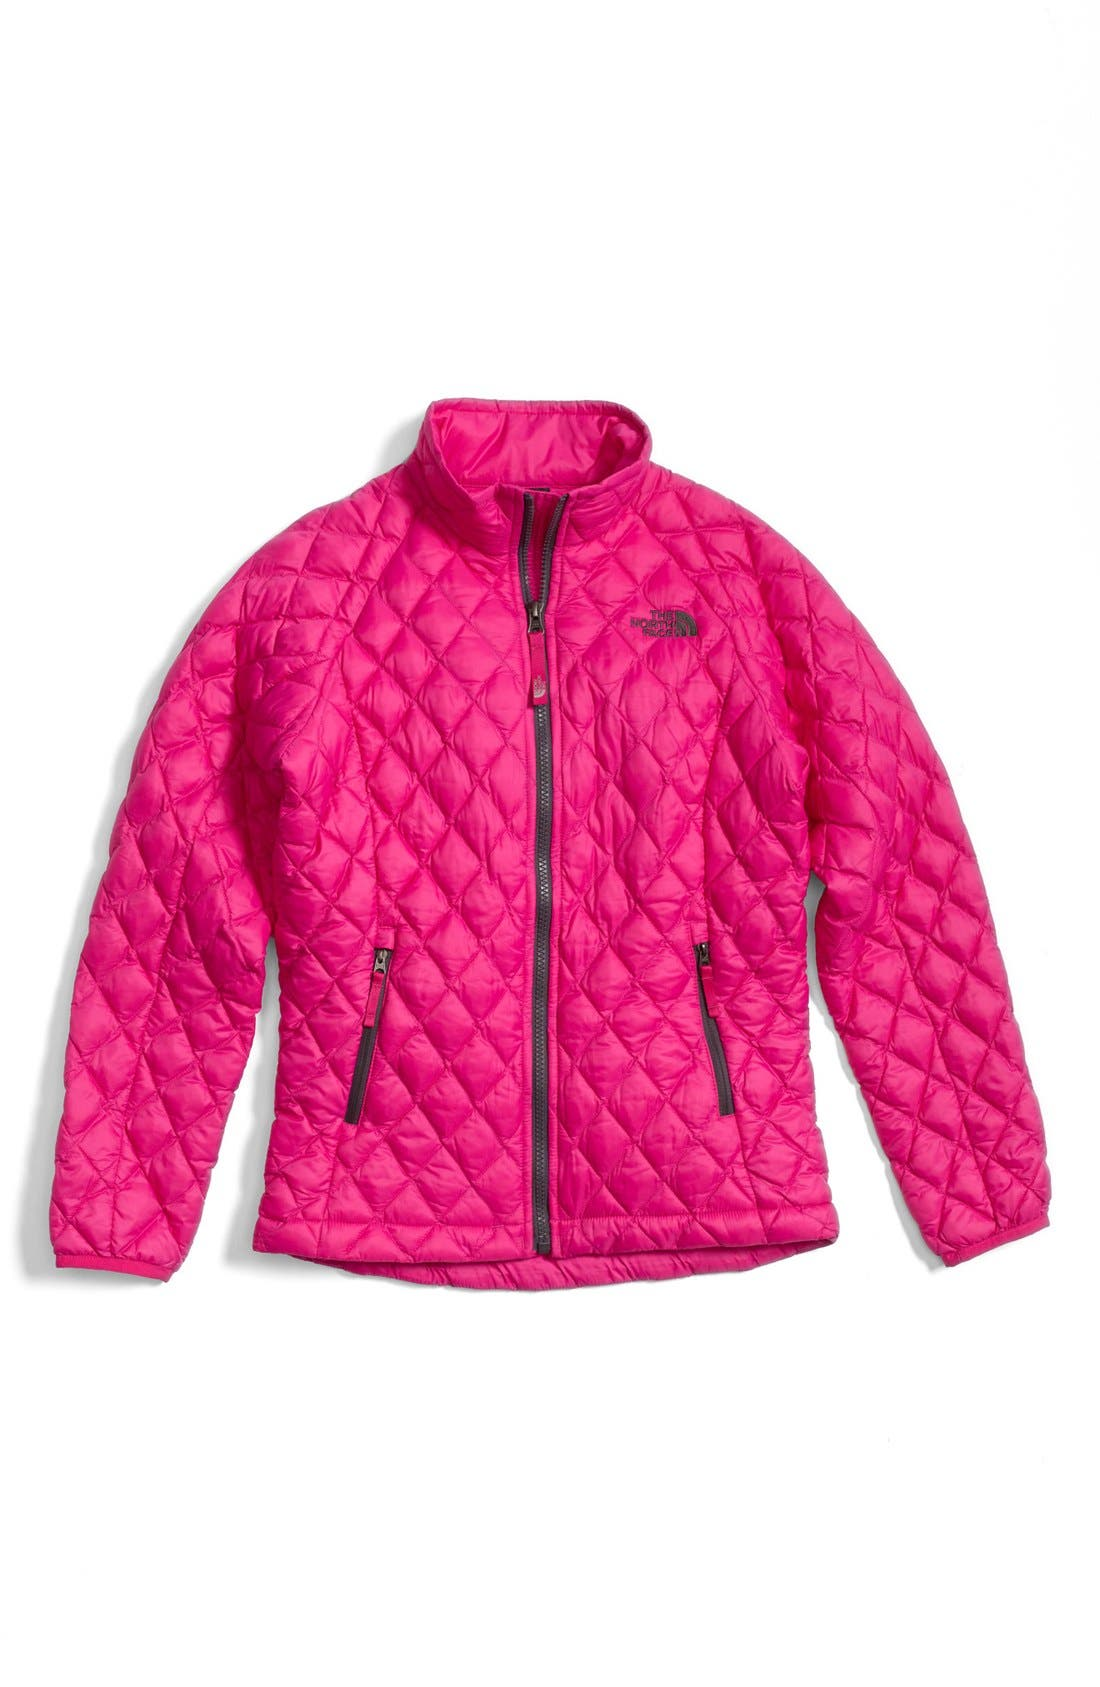 Alternate Image 1 Selected - The North Face Reversible Beanie, Quilted Jacket & Tucker + Tate Denim Leggings (Little Girls & Big Girls)